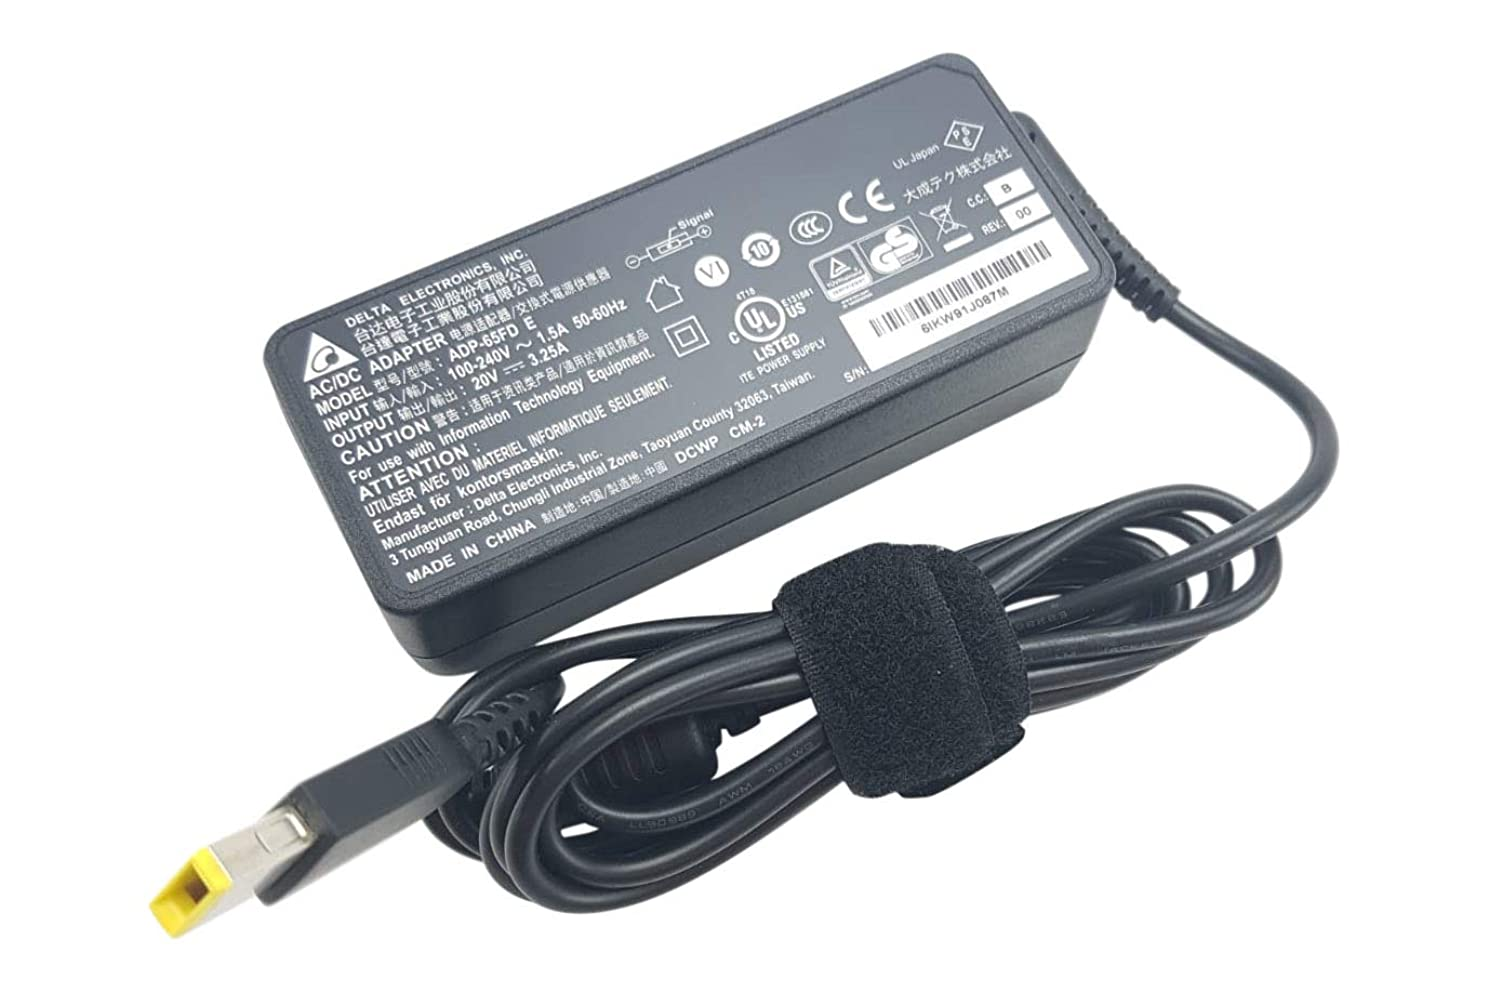 Delta Electronics Lenovo Flex 2 Flex 3 Yoga 11 11S Ideapad 300 300S 500 500S PA-1650-72 Laptop Charger AC Adapter Power Supply Cord Cable